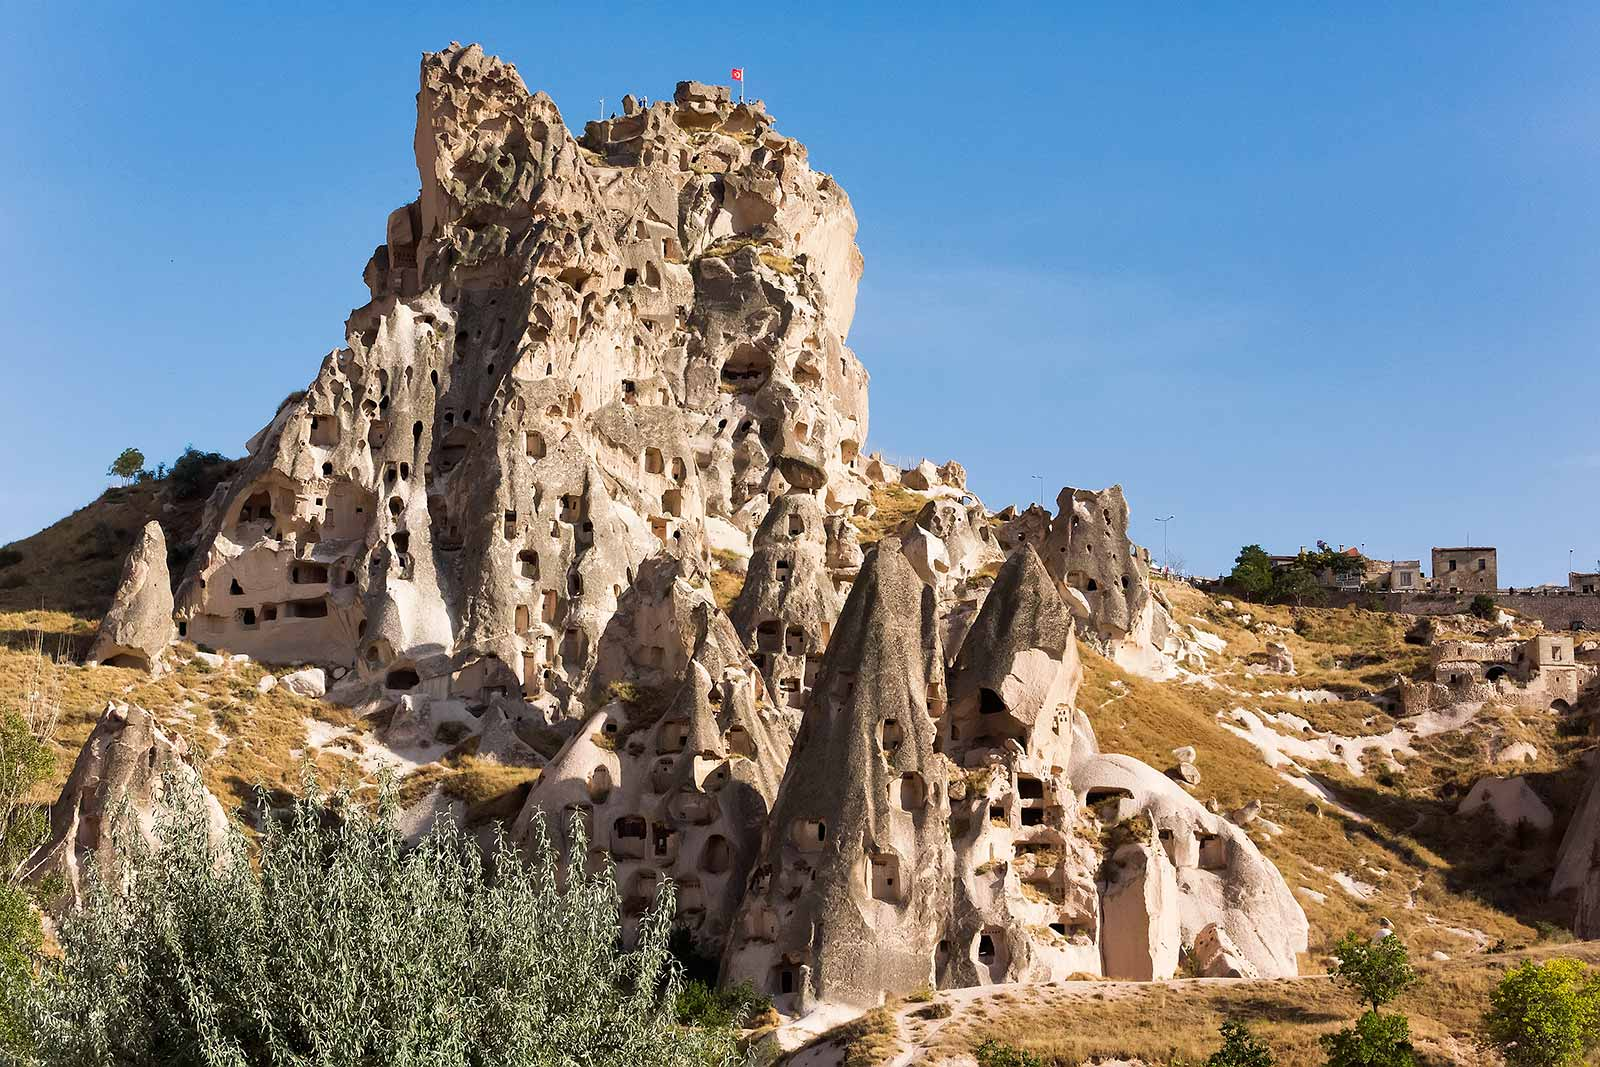 The rock citadel in Ushisar, Cappadocia has many underground rooms and walkways. This, as well as the fantastic view from the hisar are well worth a trip.